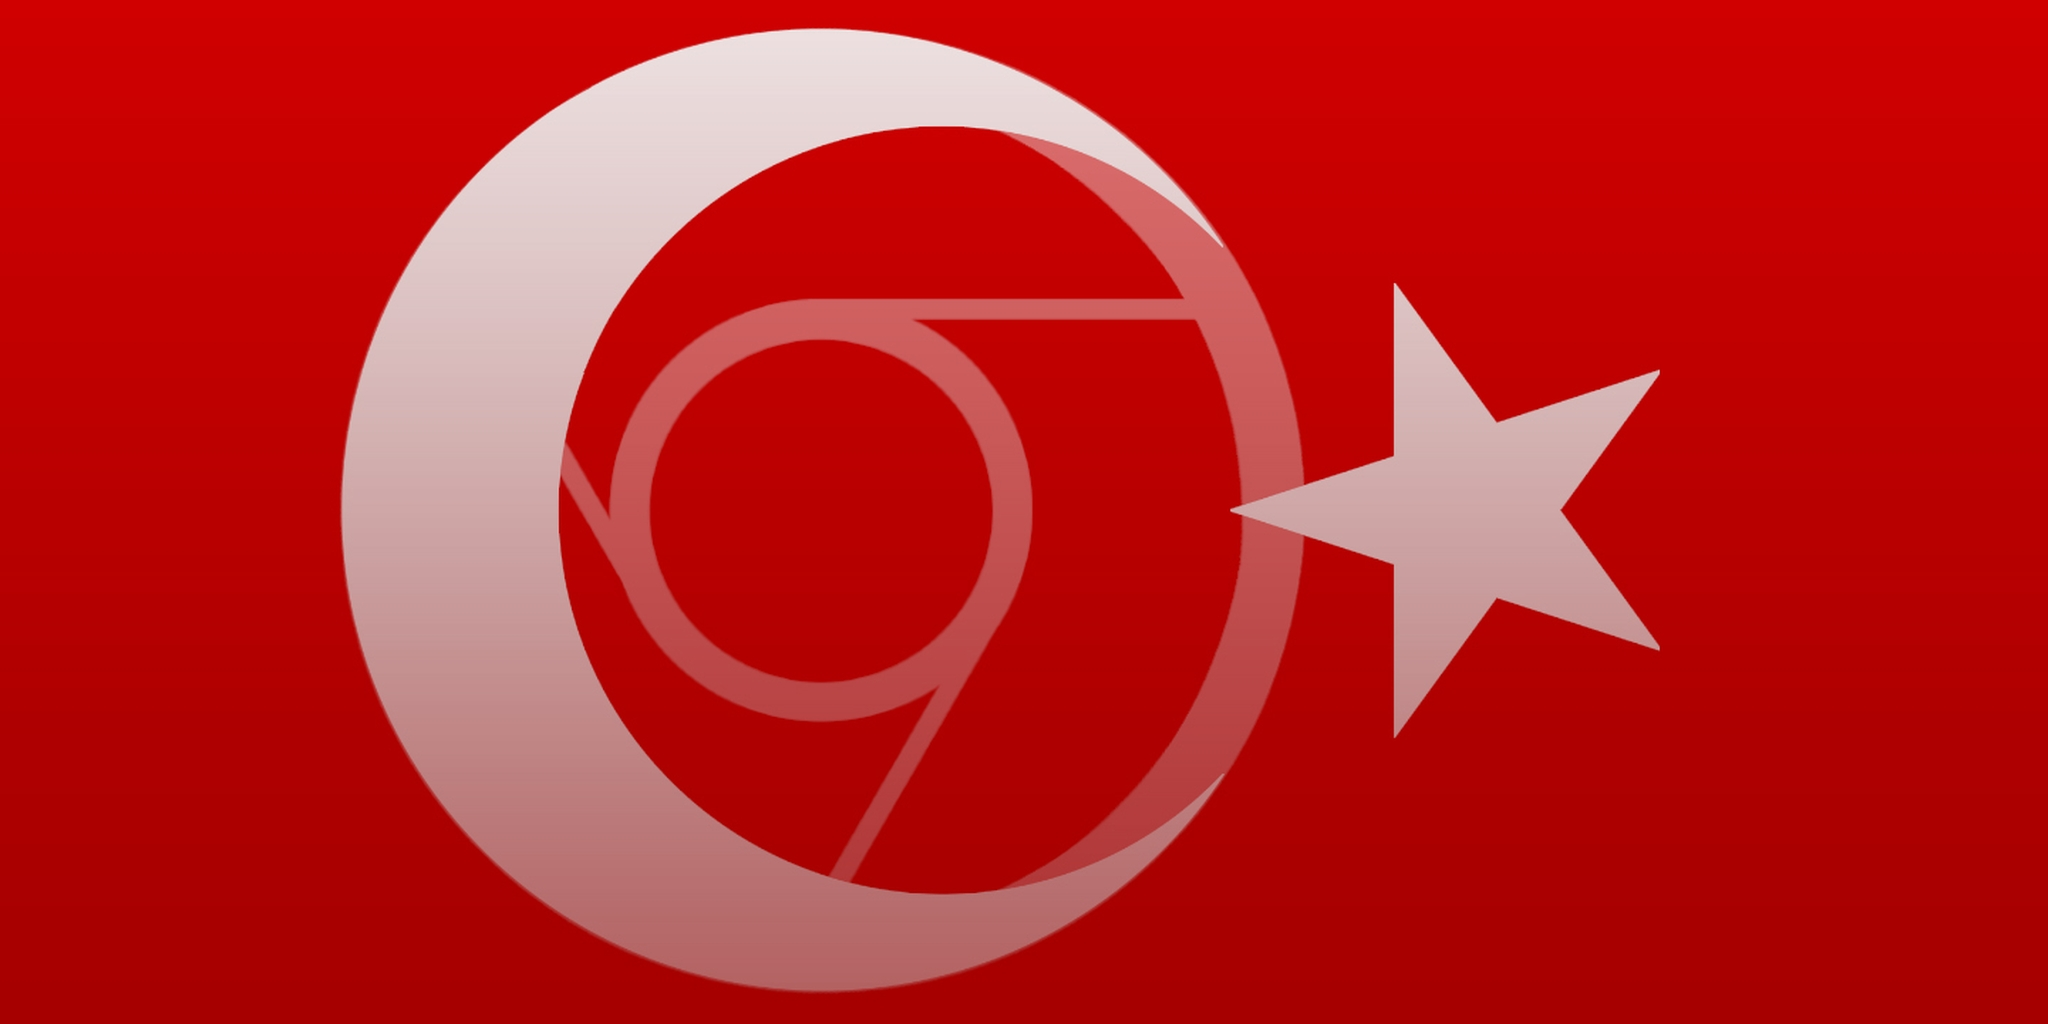 abstract art of the turkish flag with the google chrome logo